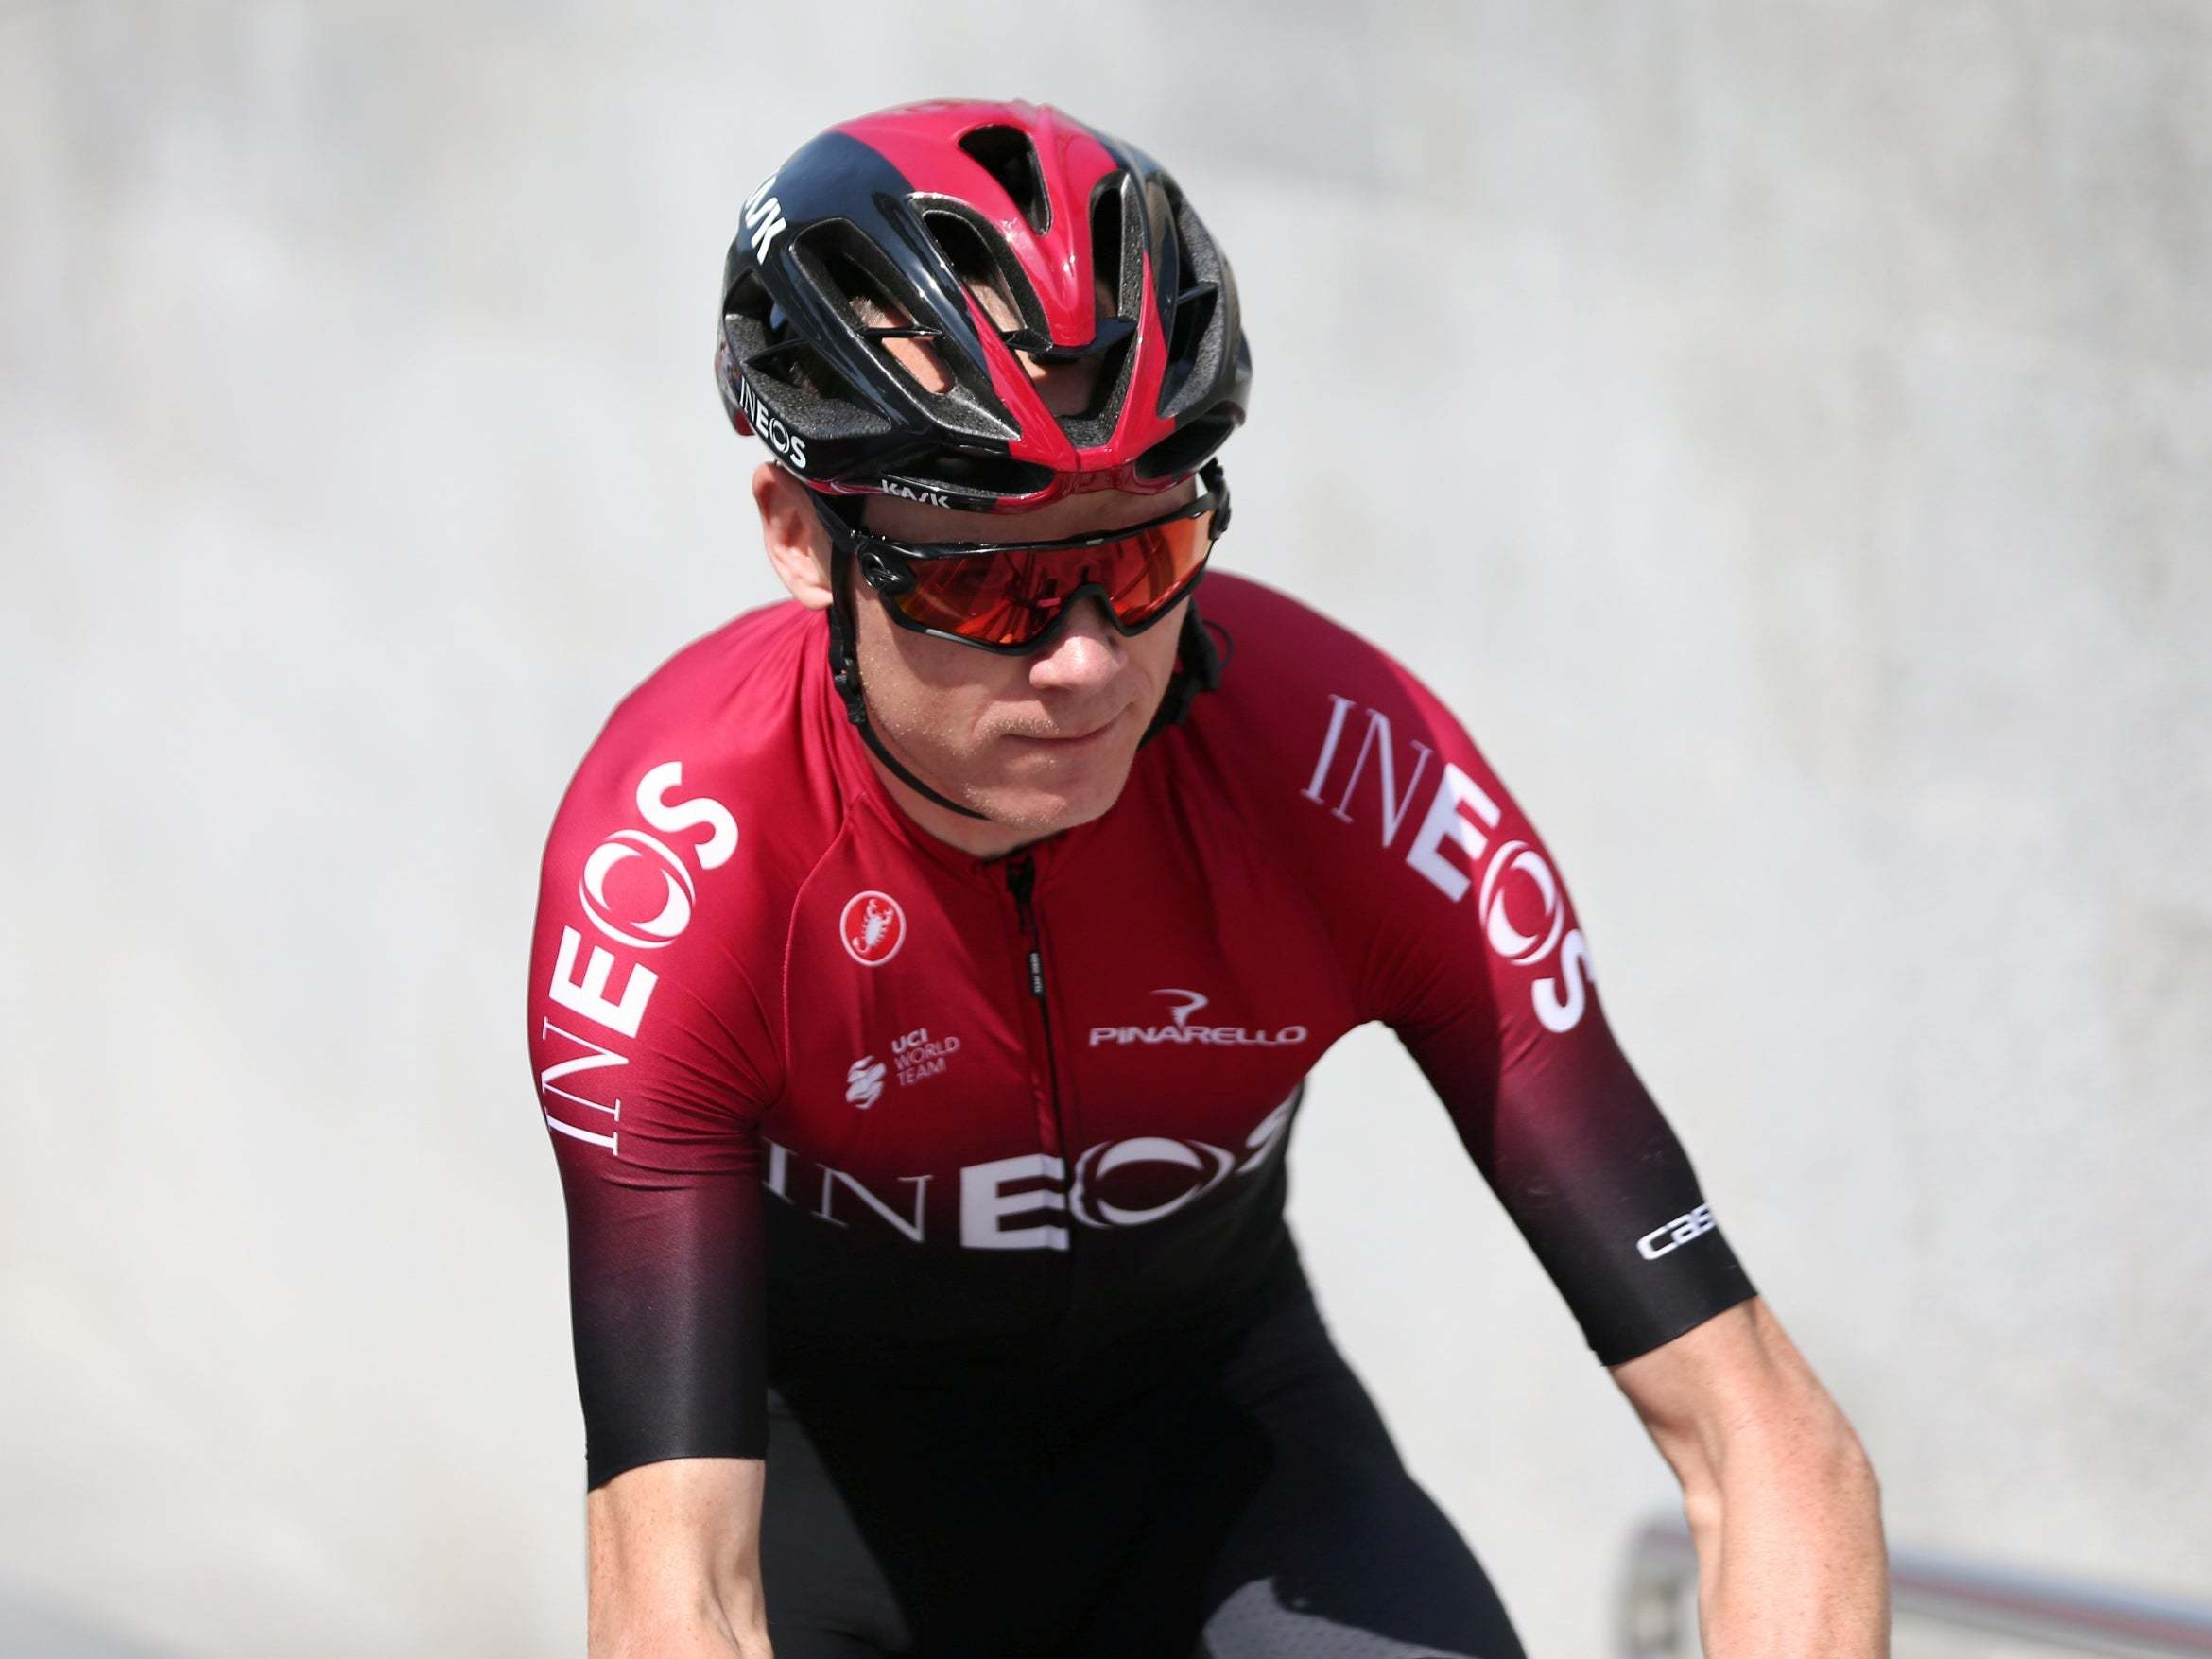 Chris Froome back in the saddle this weekend at La Route d'Occitanie